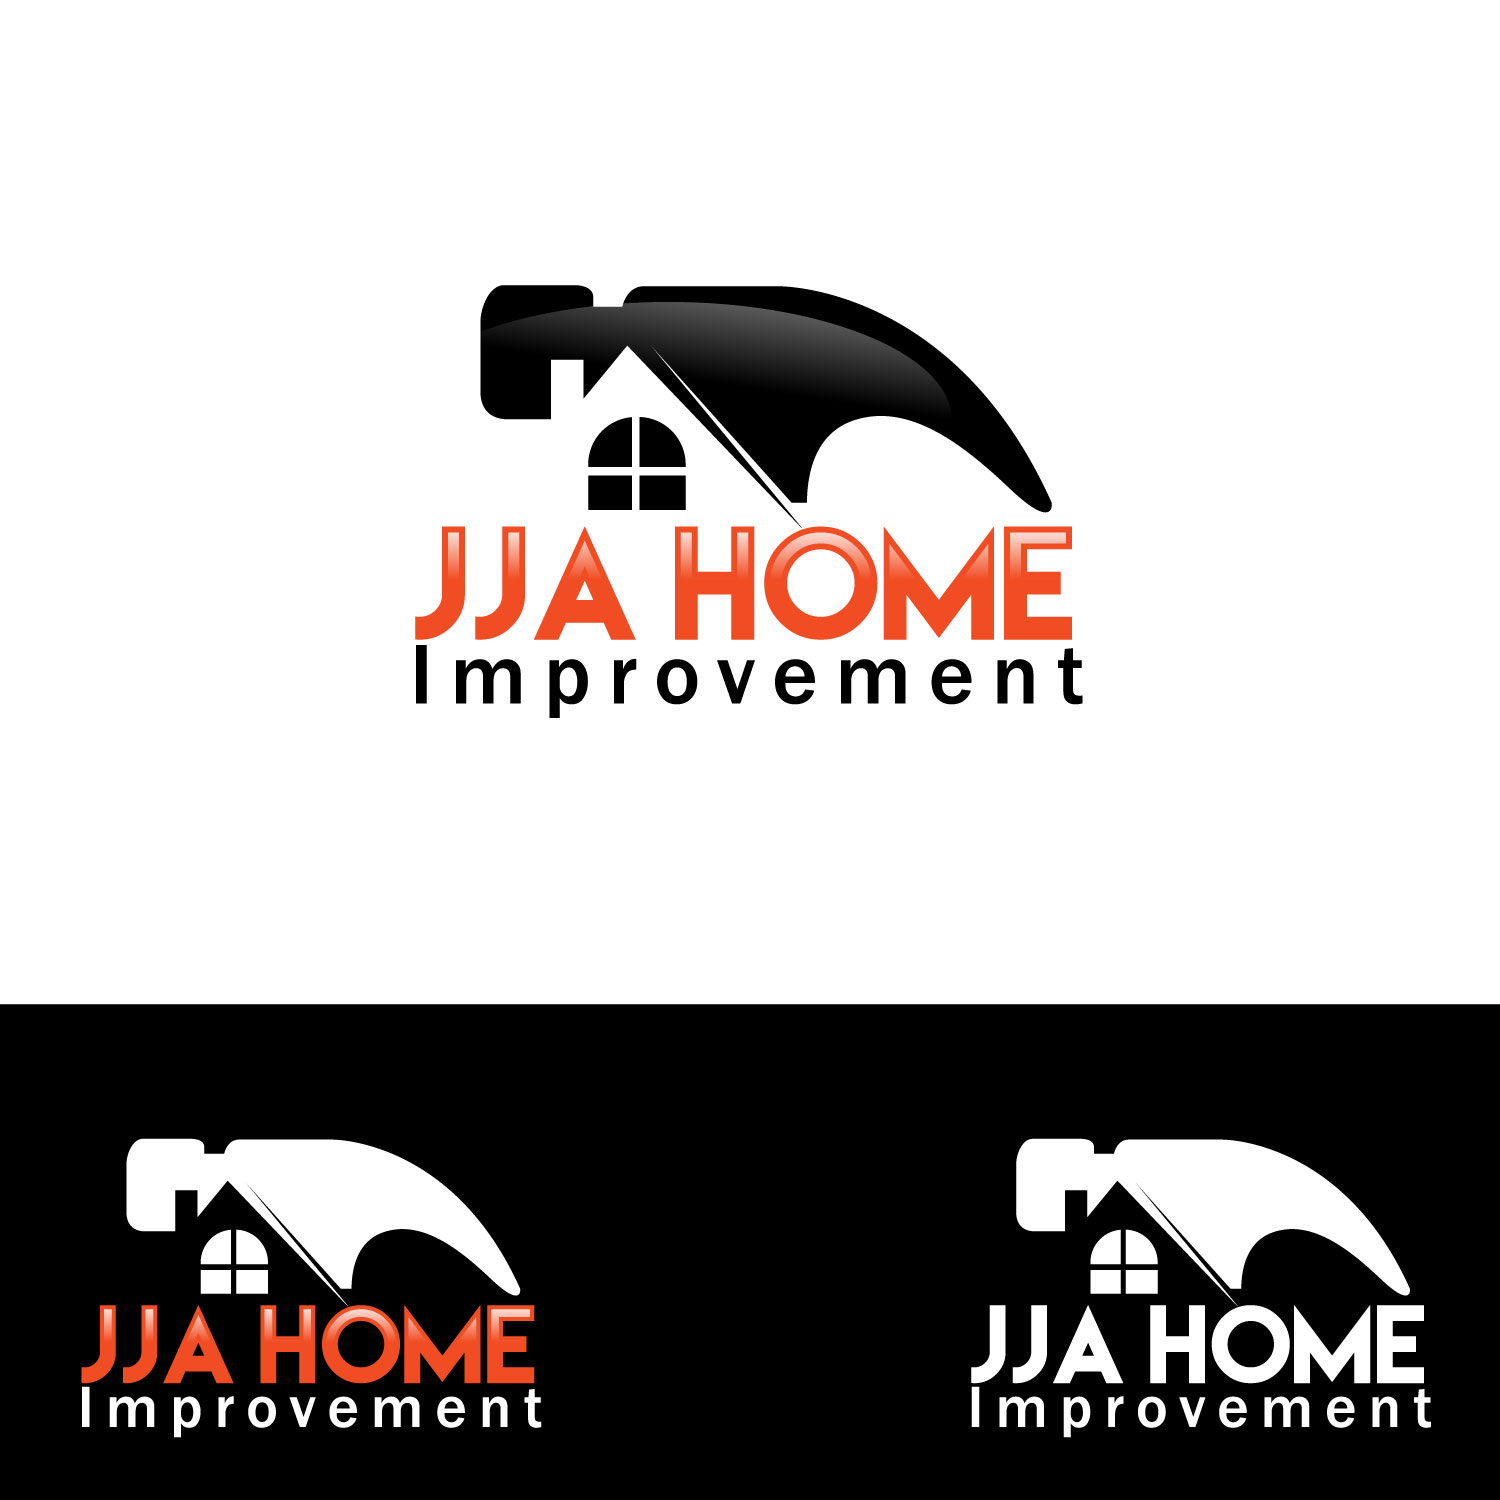 Logo Design By Lagalag   Entry No. 27 In The Logo Design Contest JJA Home